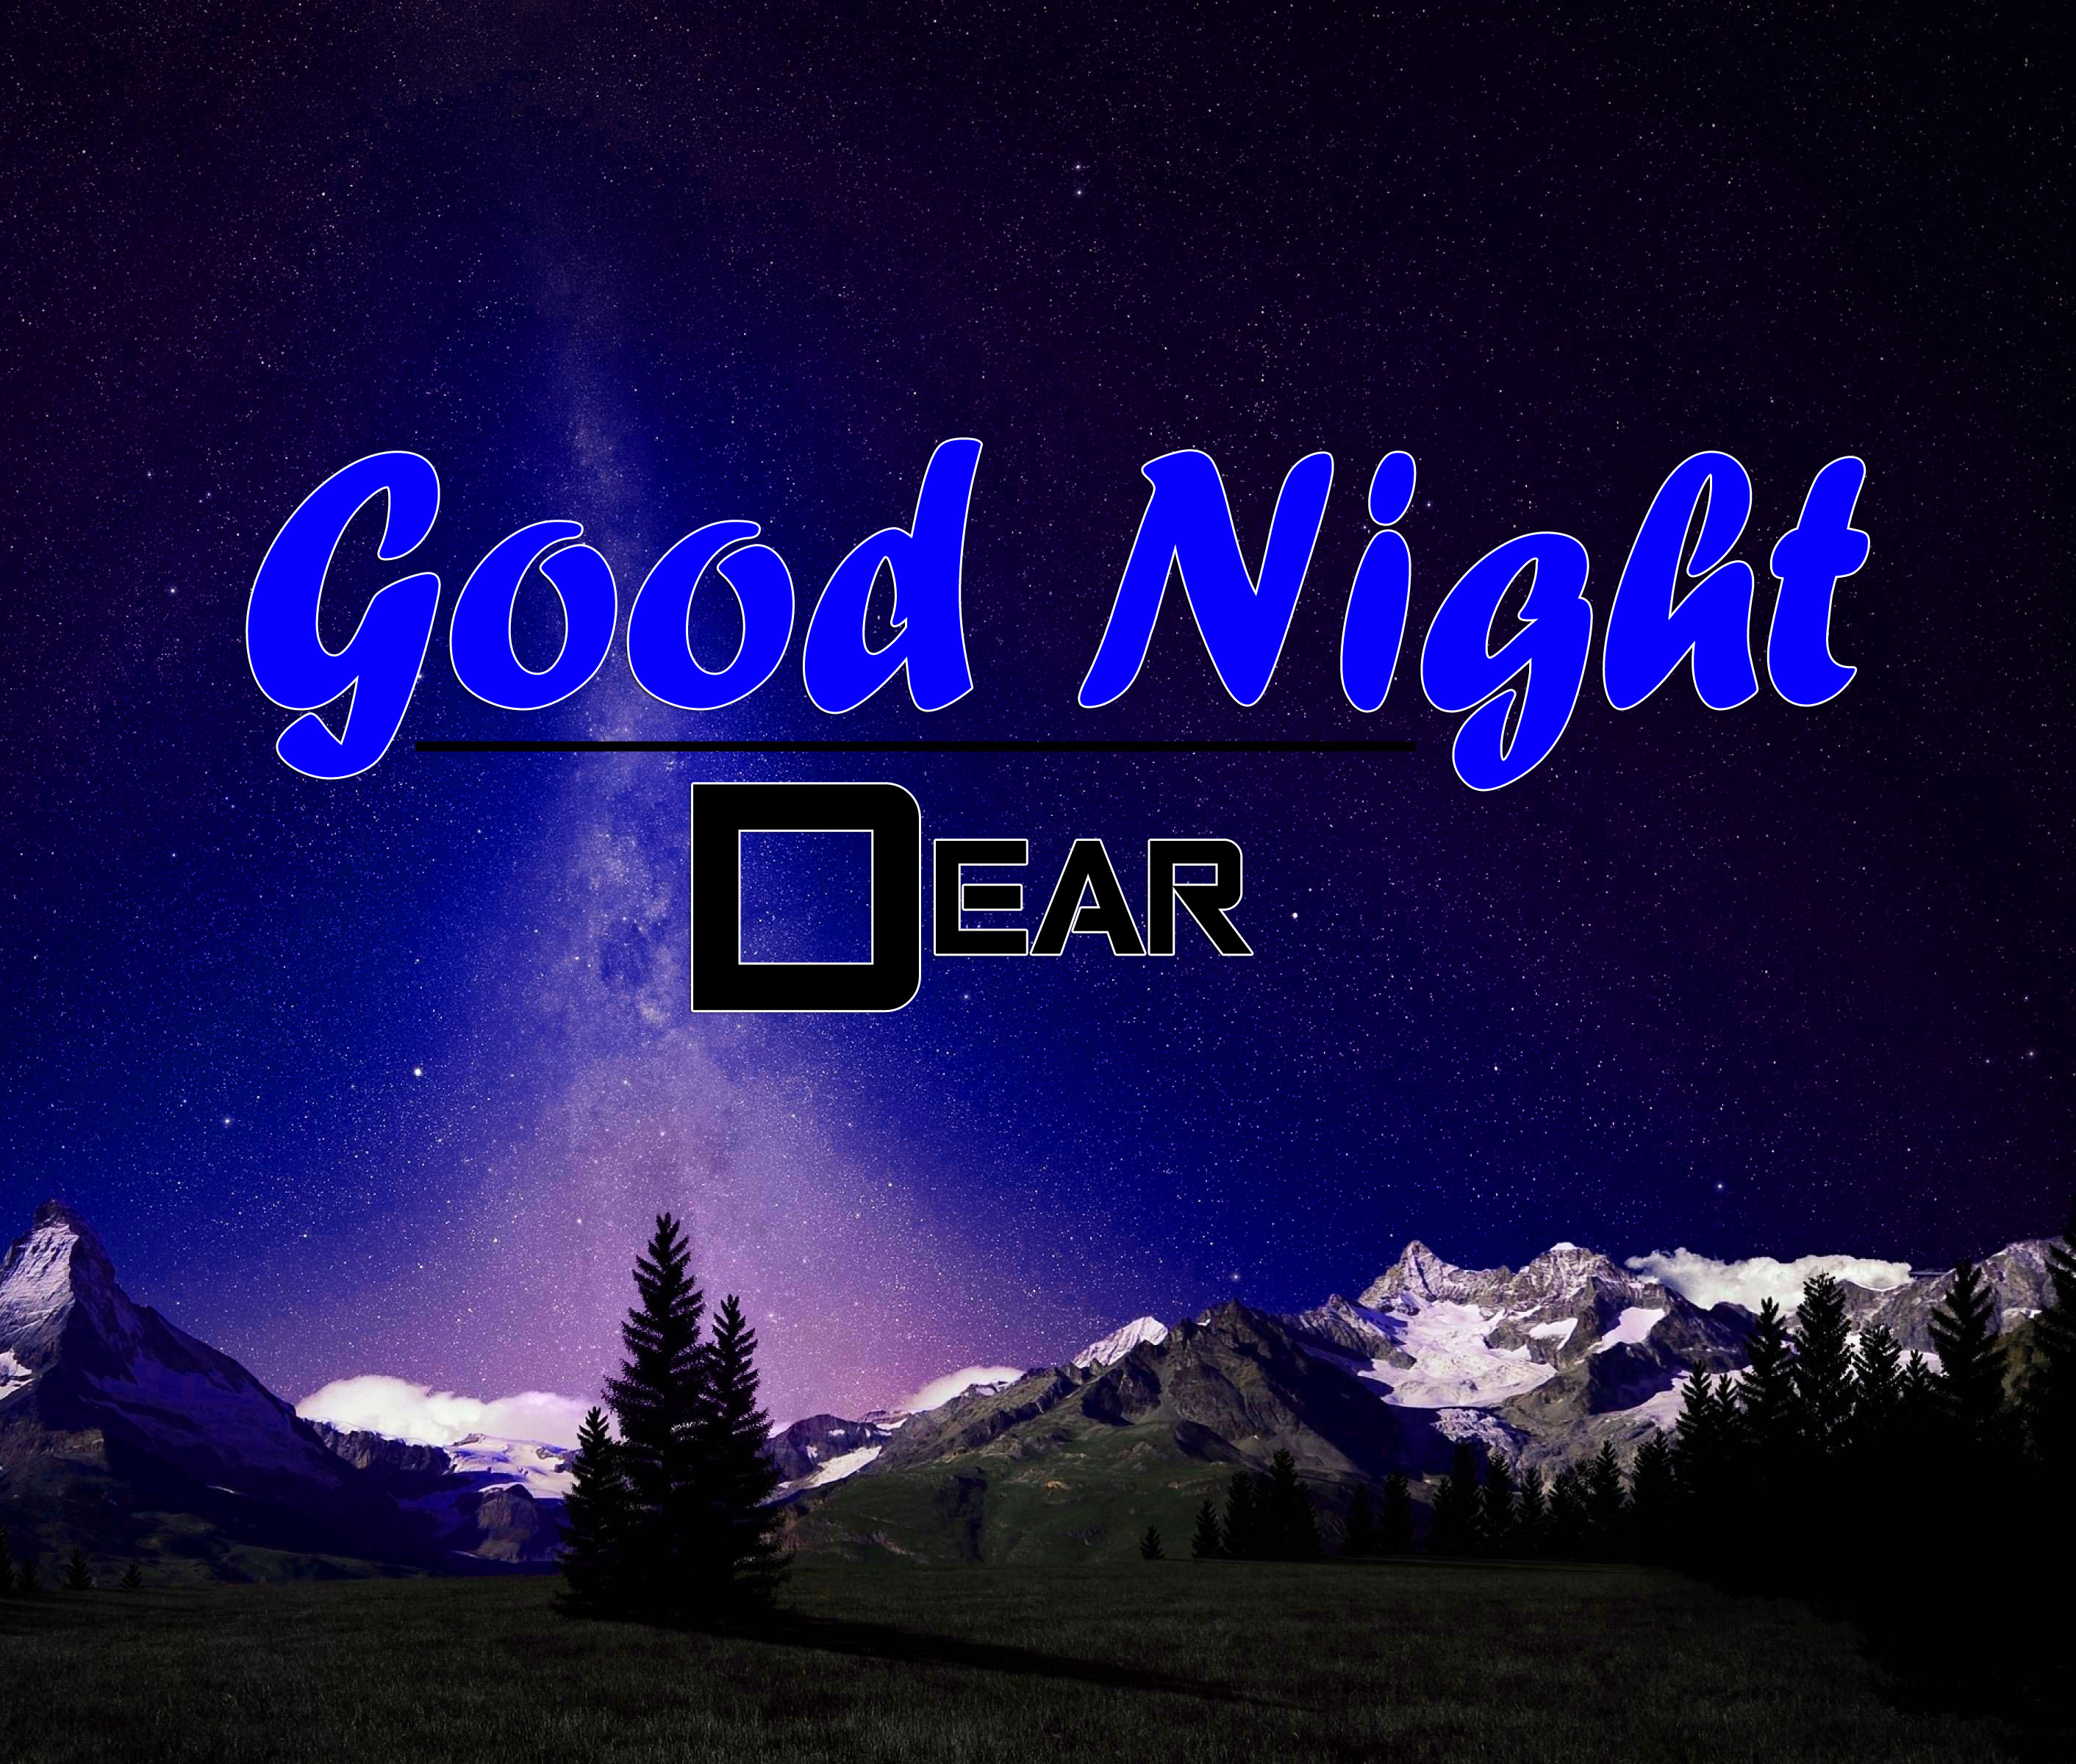 Free Latest Good Night Wishes k Images Pics Download